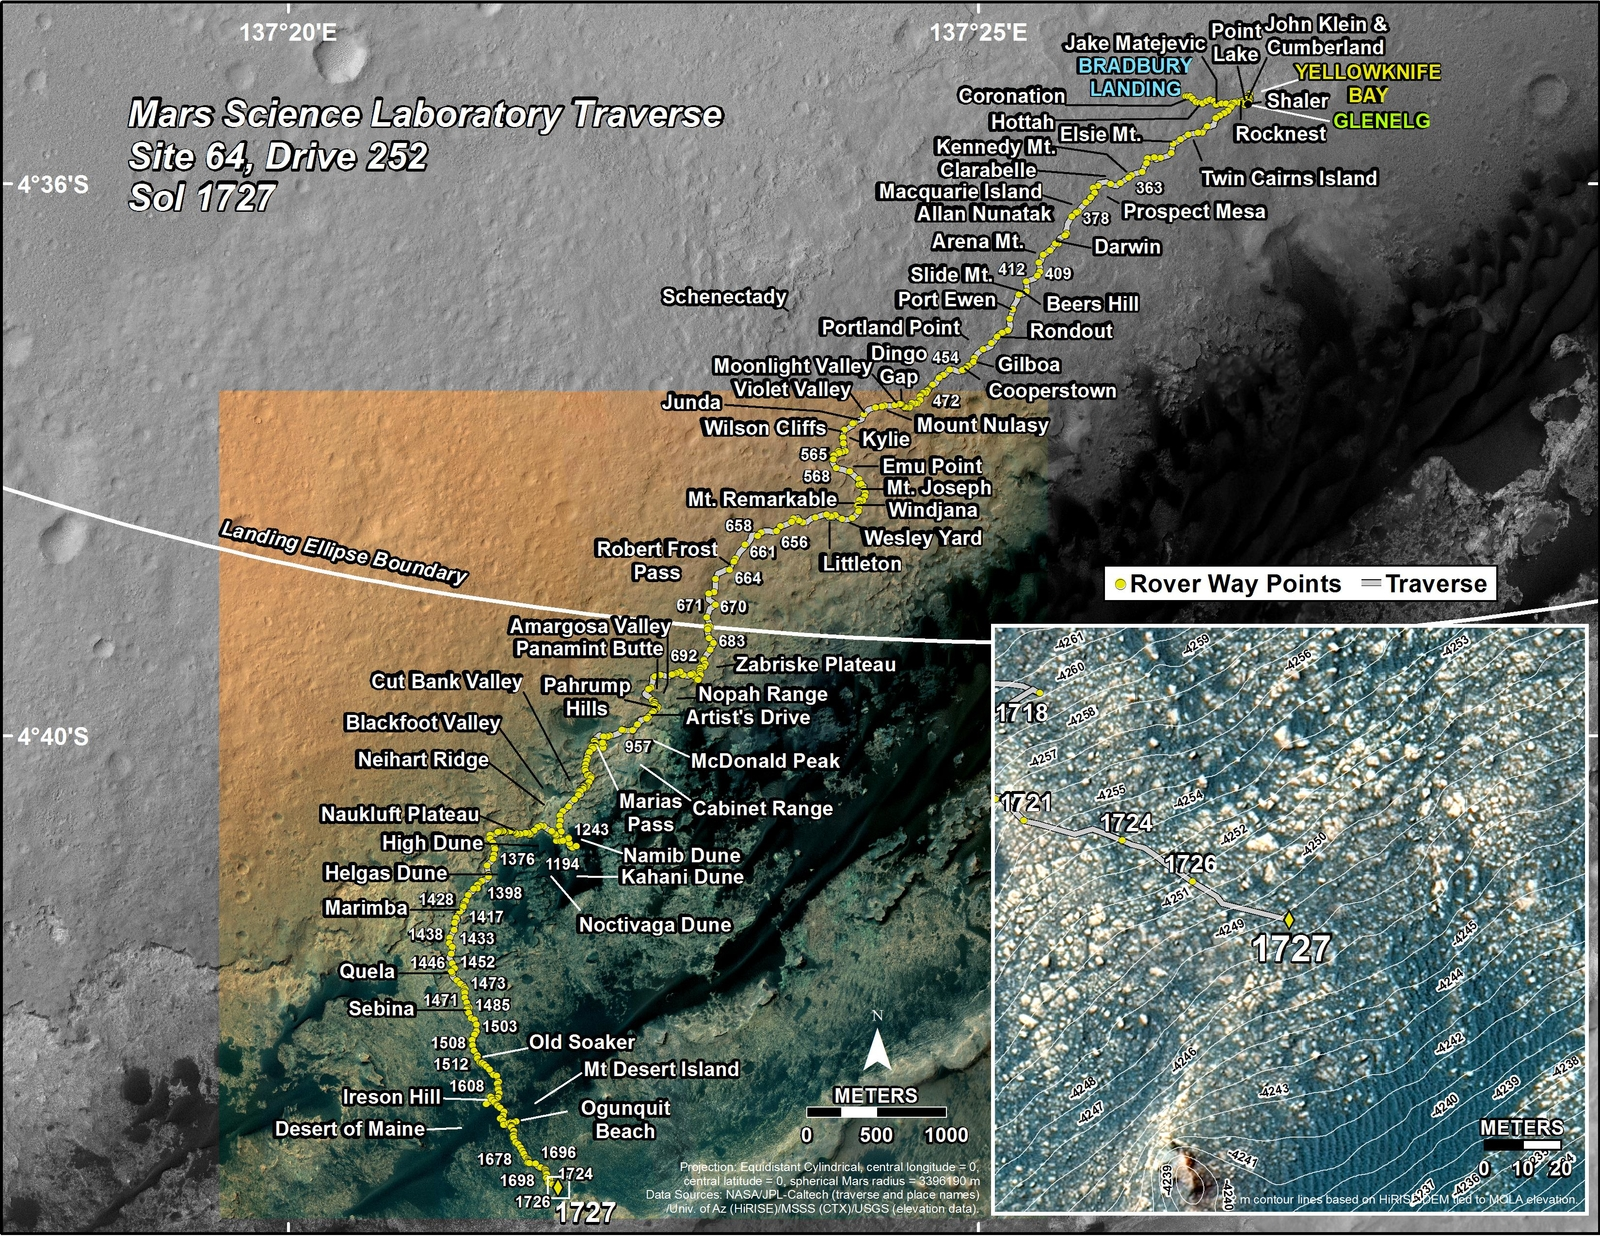 This map shows the route driven by NASA's Mars rover Curiosity through the 1727 Martian day, or sol, of the rover's mission on Mars (June 12, 2017).